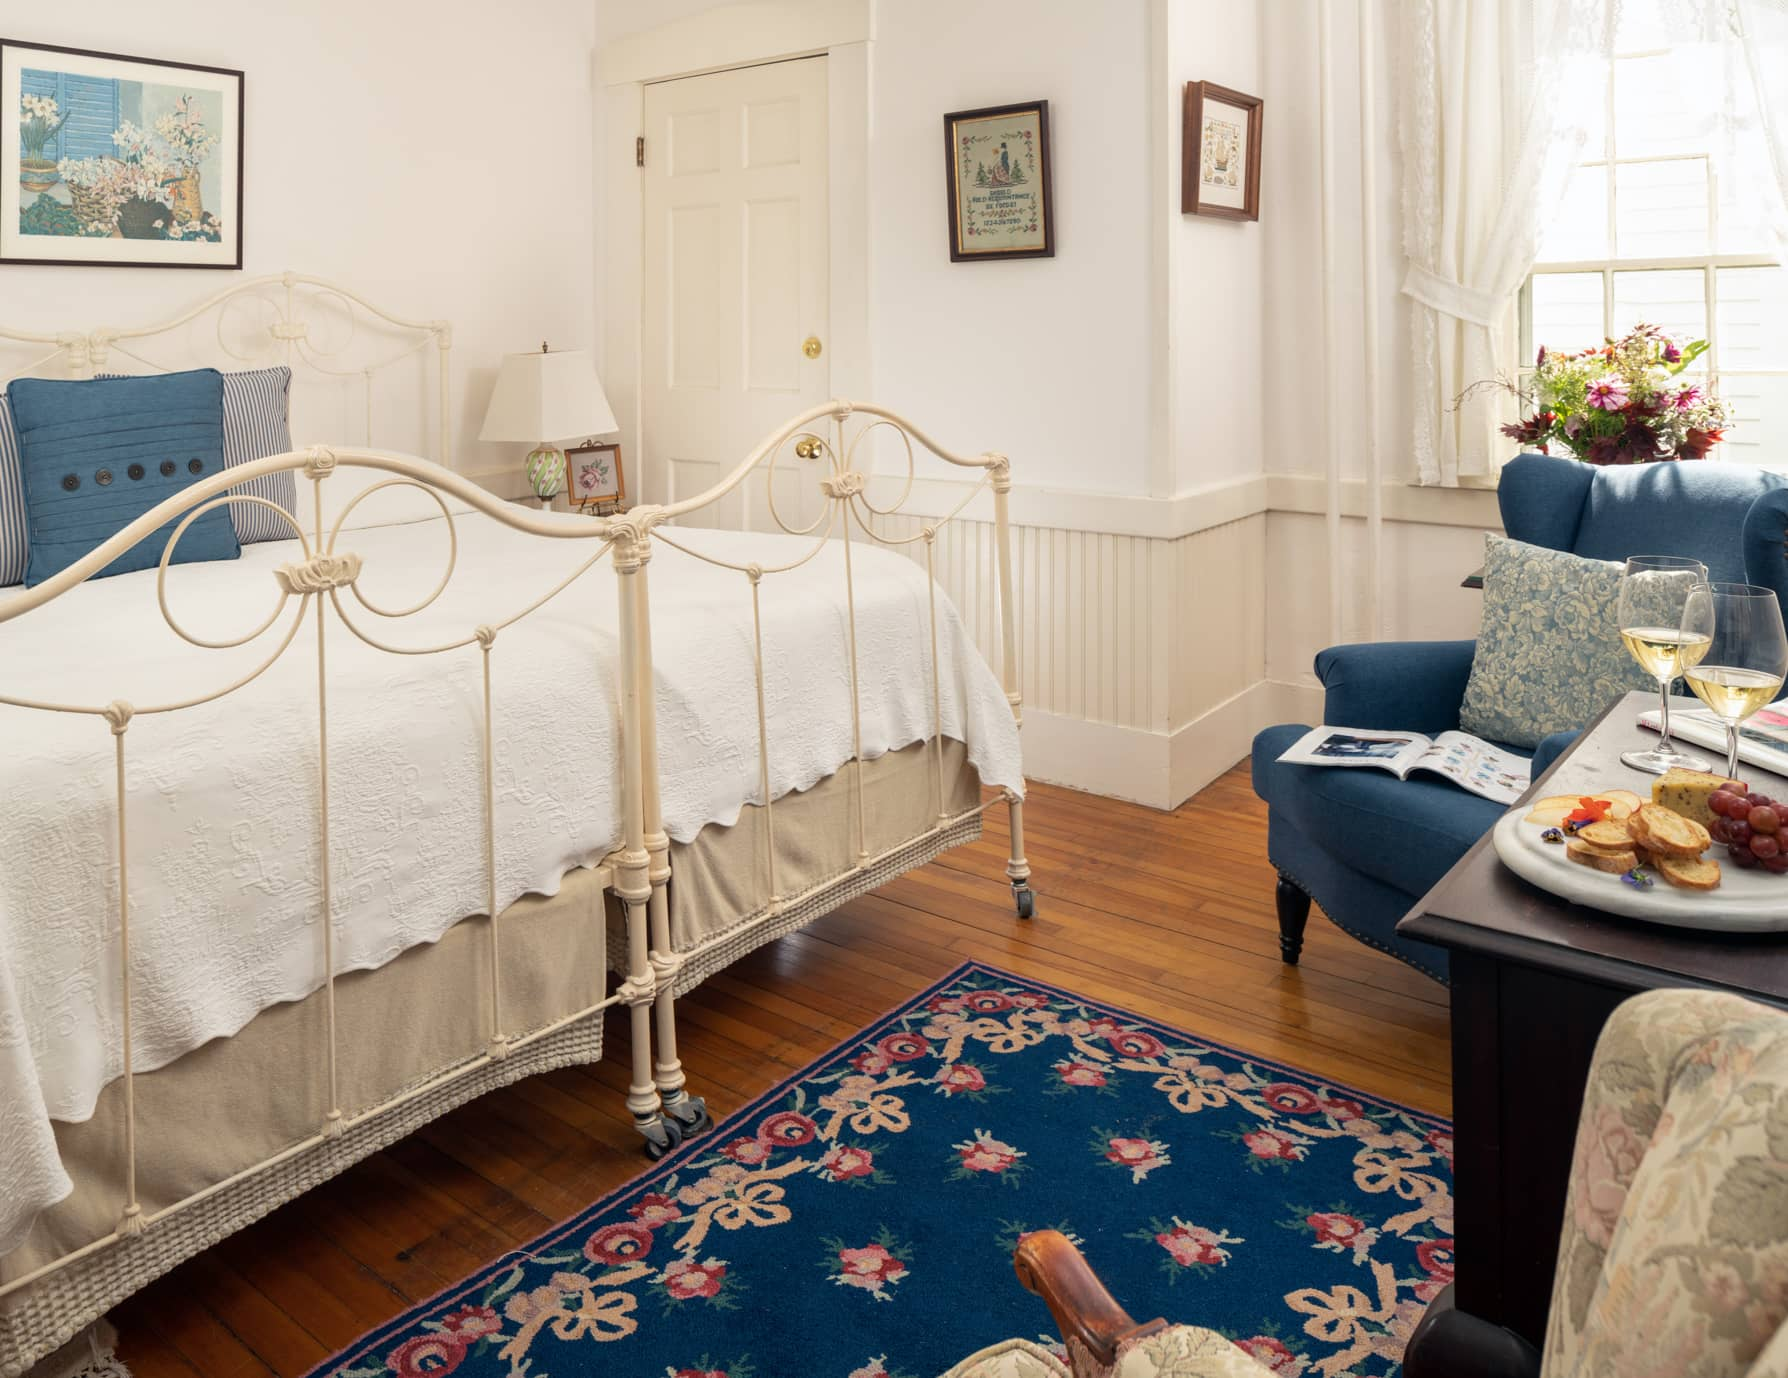 Room 1 at our bed and breakfast near Acadia National Park